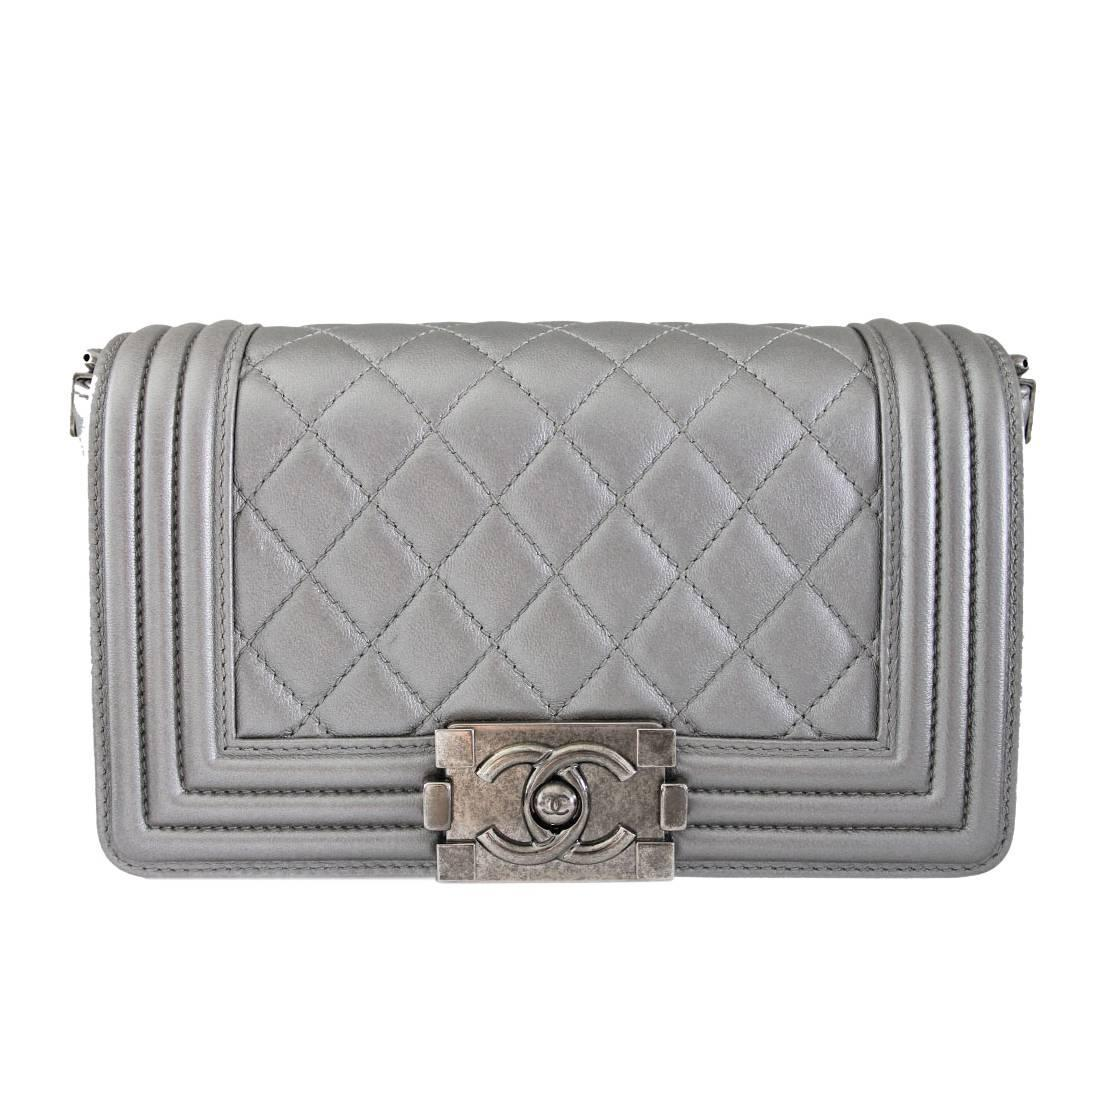 0b5740b4ed2c Chanel Silver Boy Bag Quilted Leather Stingray Strap Shw Flap At